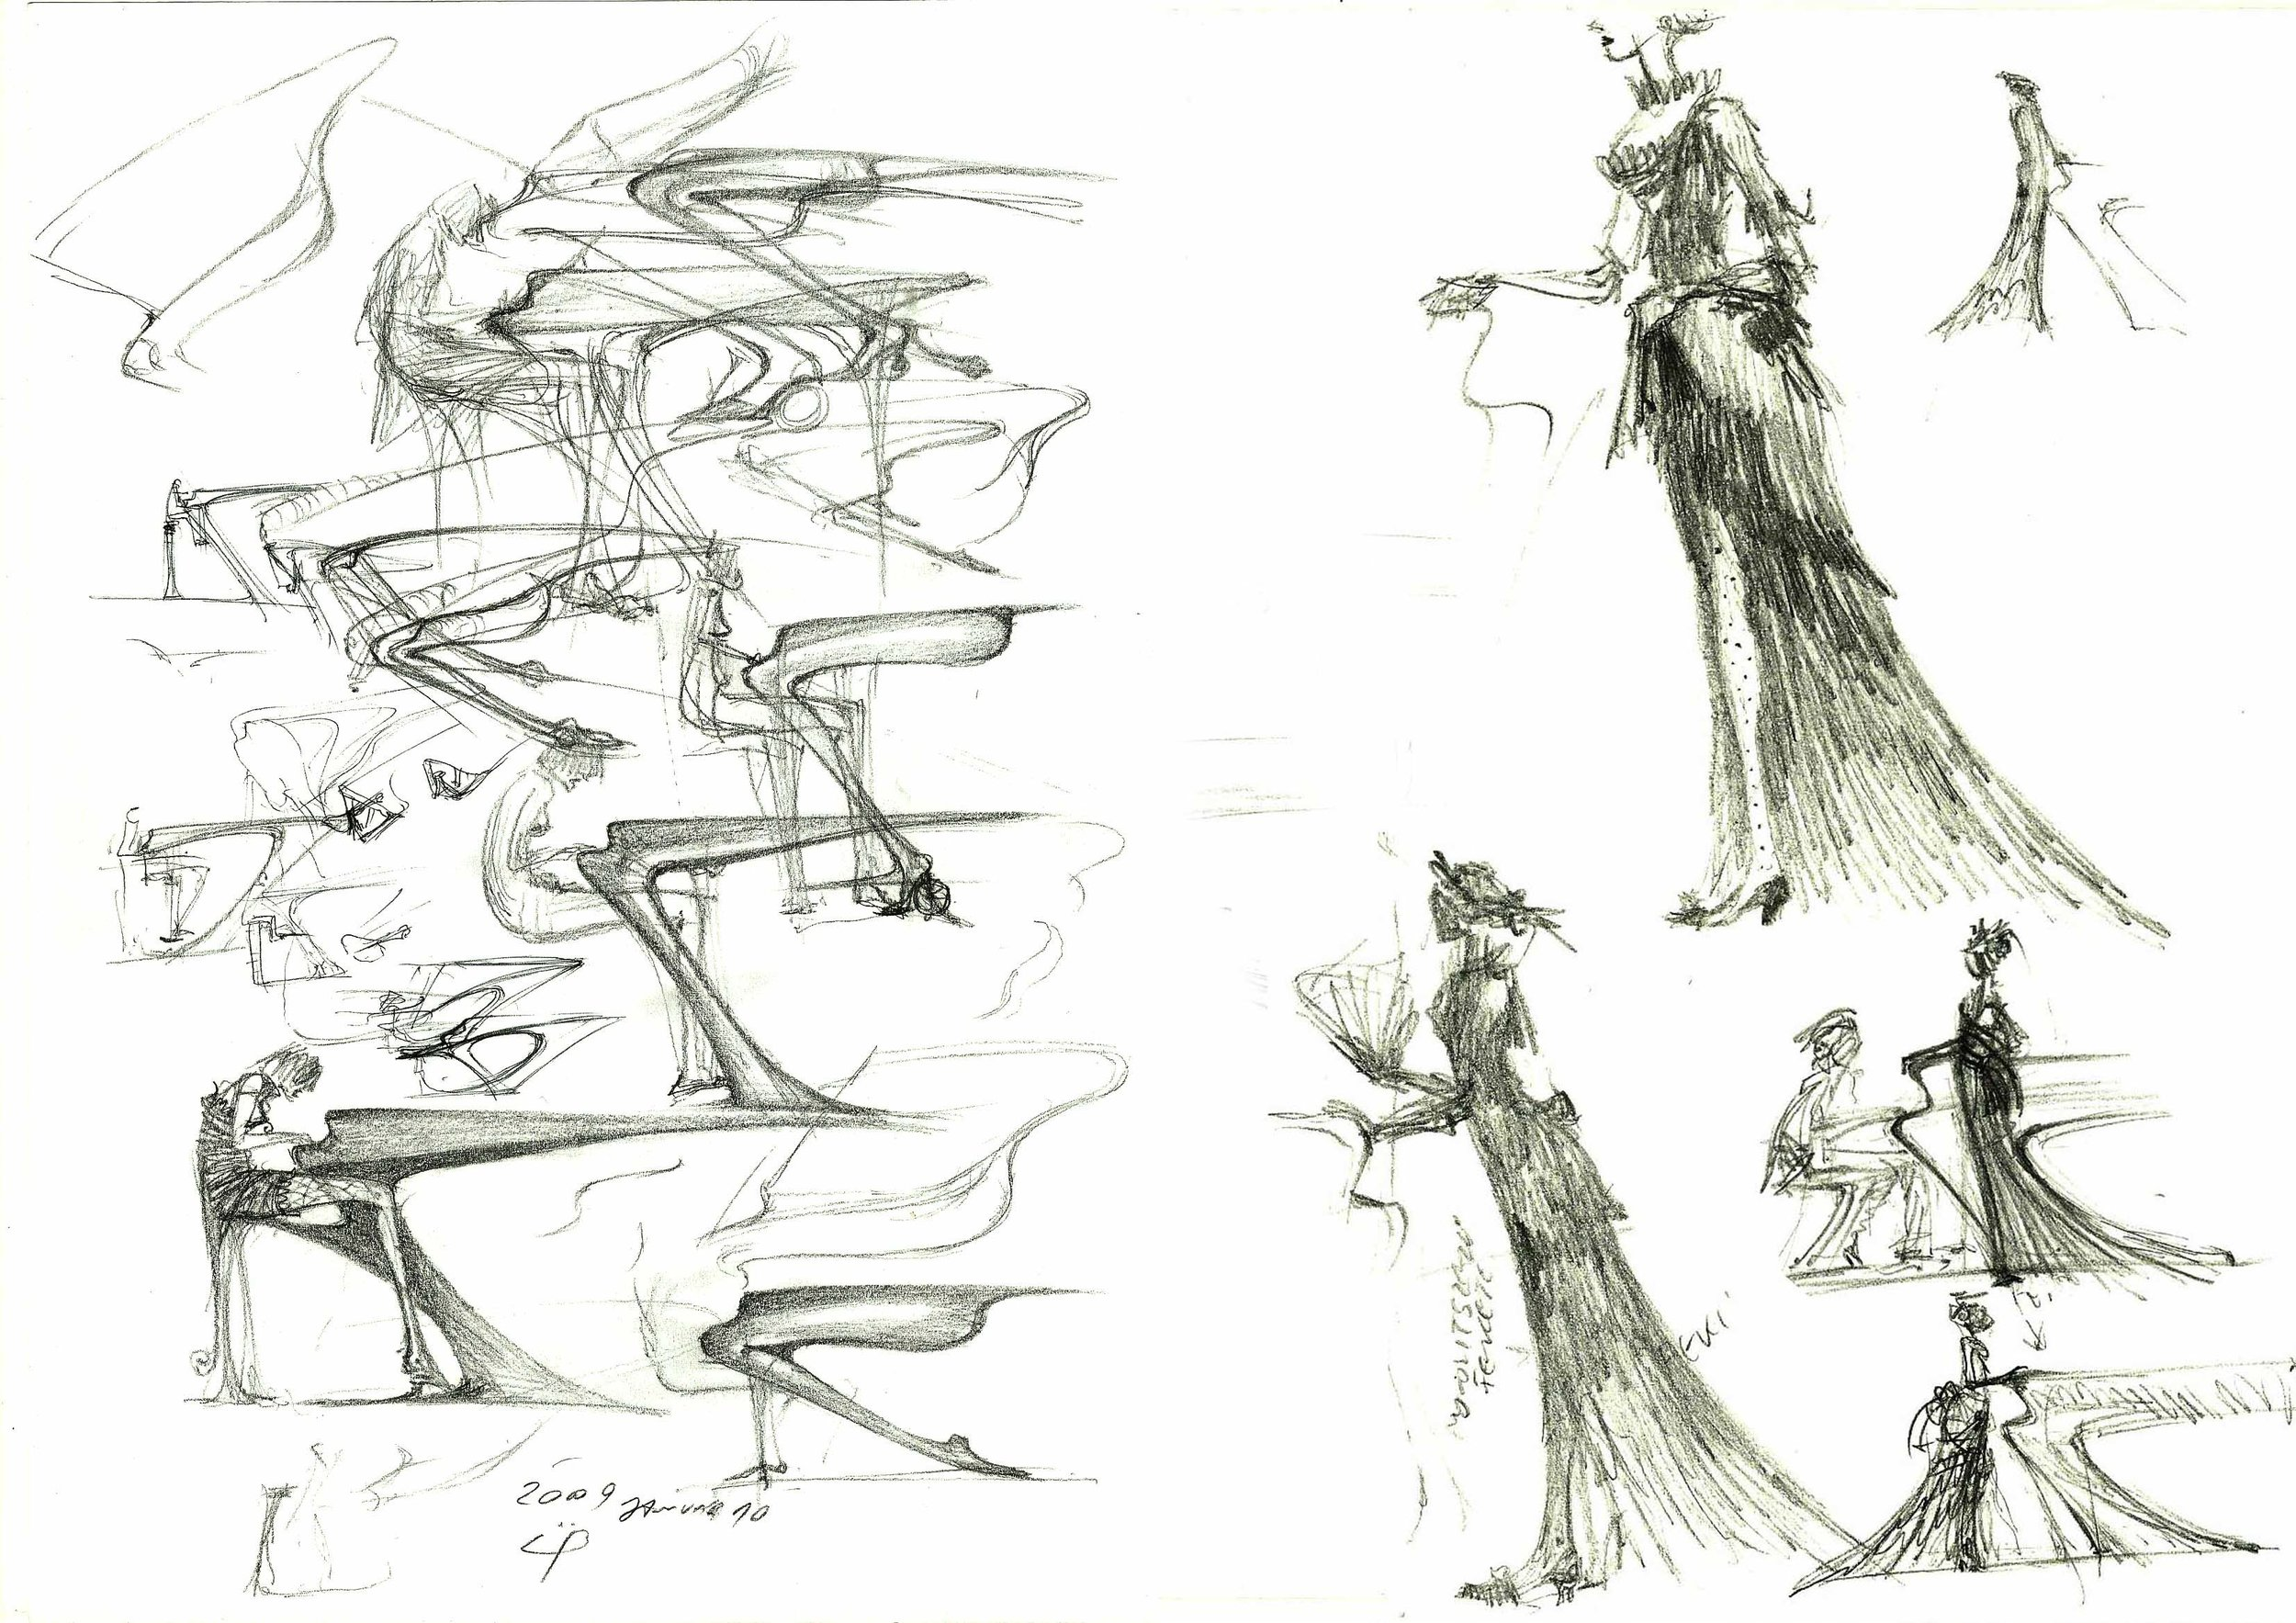 Original sketches by Péter Üveges